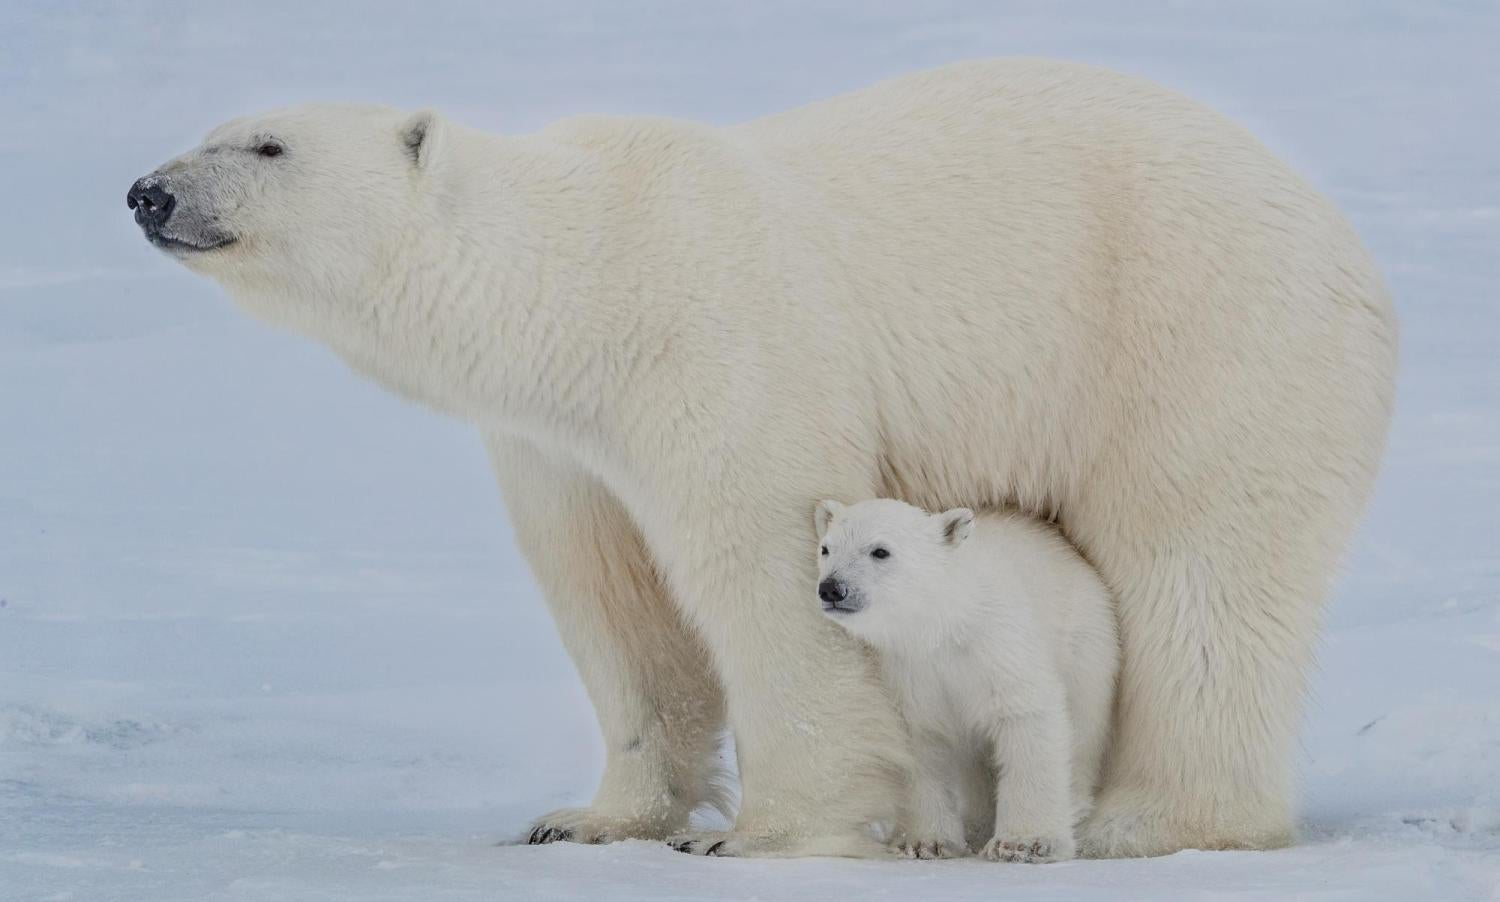 a polar bear mother standing over her baby